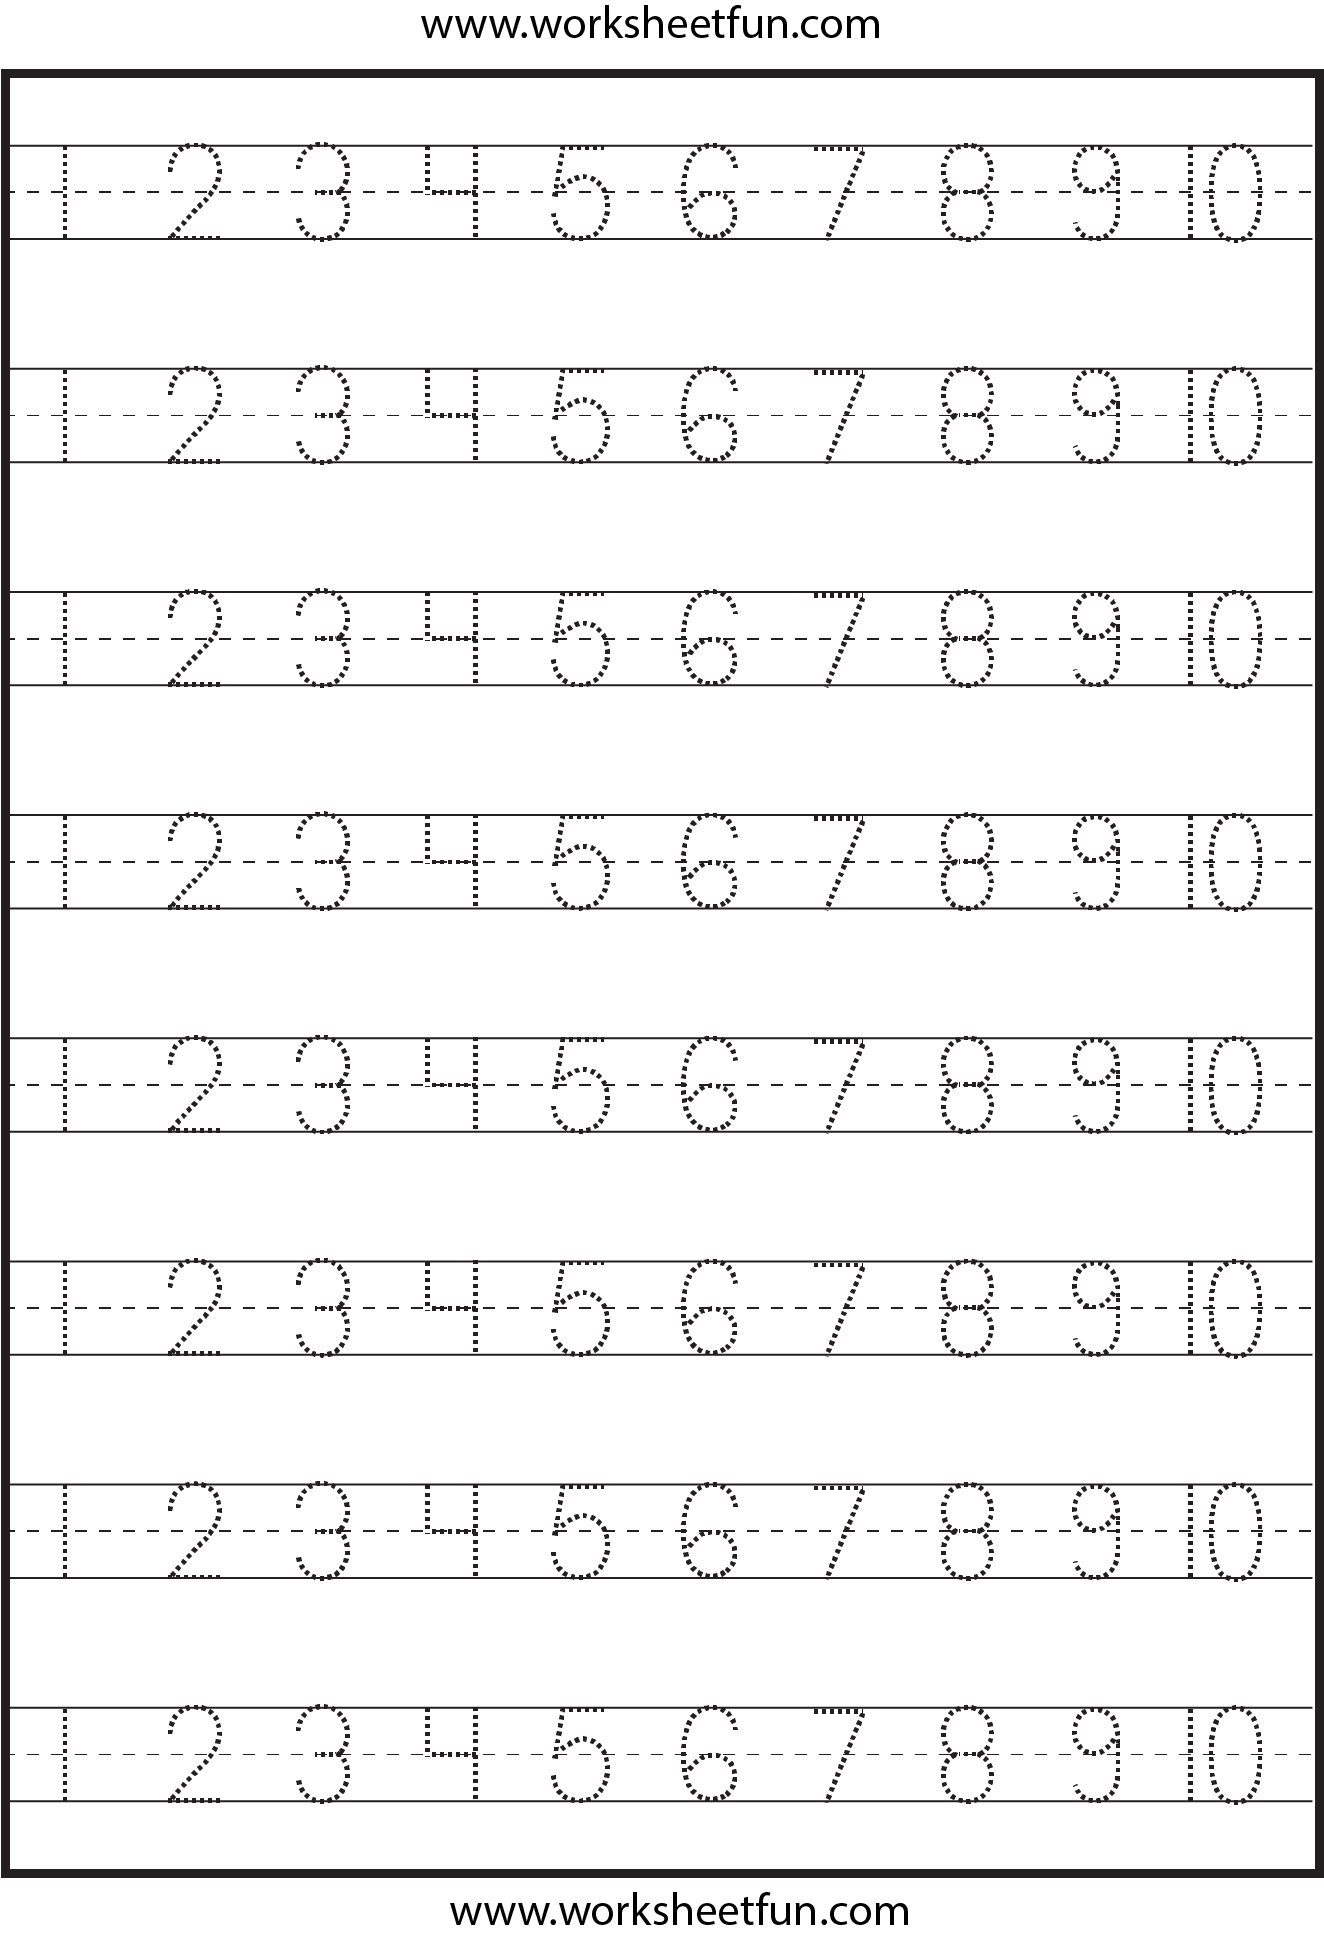 Printables Free Number Tracing Worksheets number tracing 1 10 worksheet free printable worksheets tracing